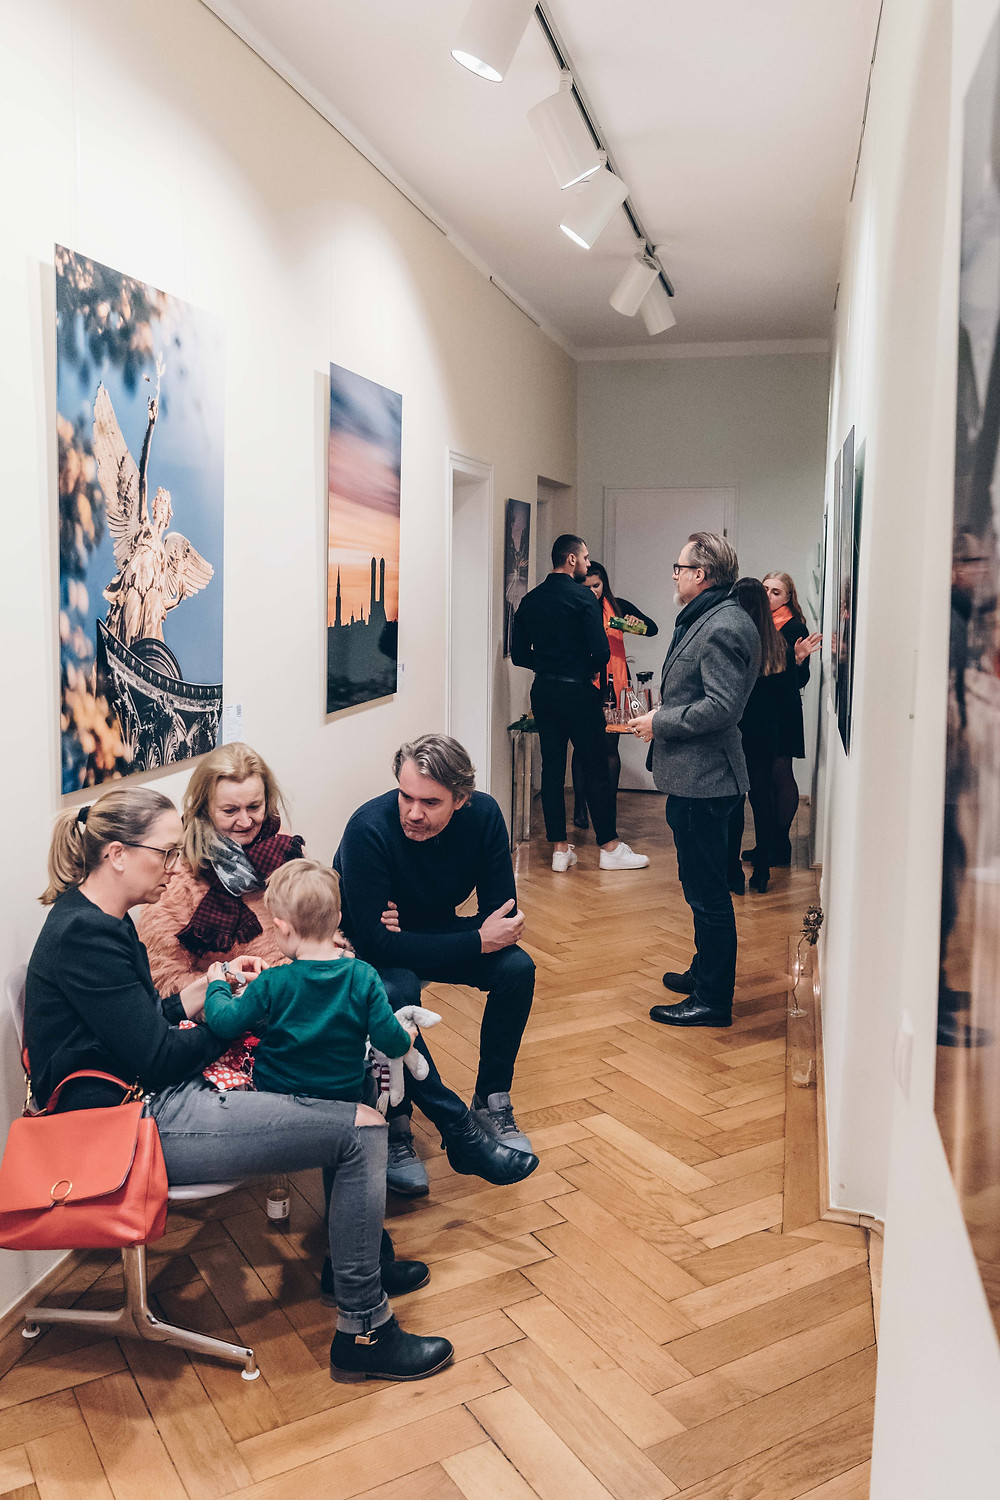 Vernissage Bilderausstellung 06.12.19_07